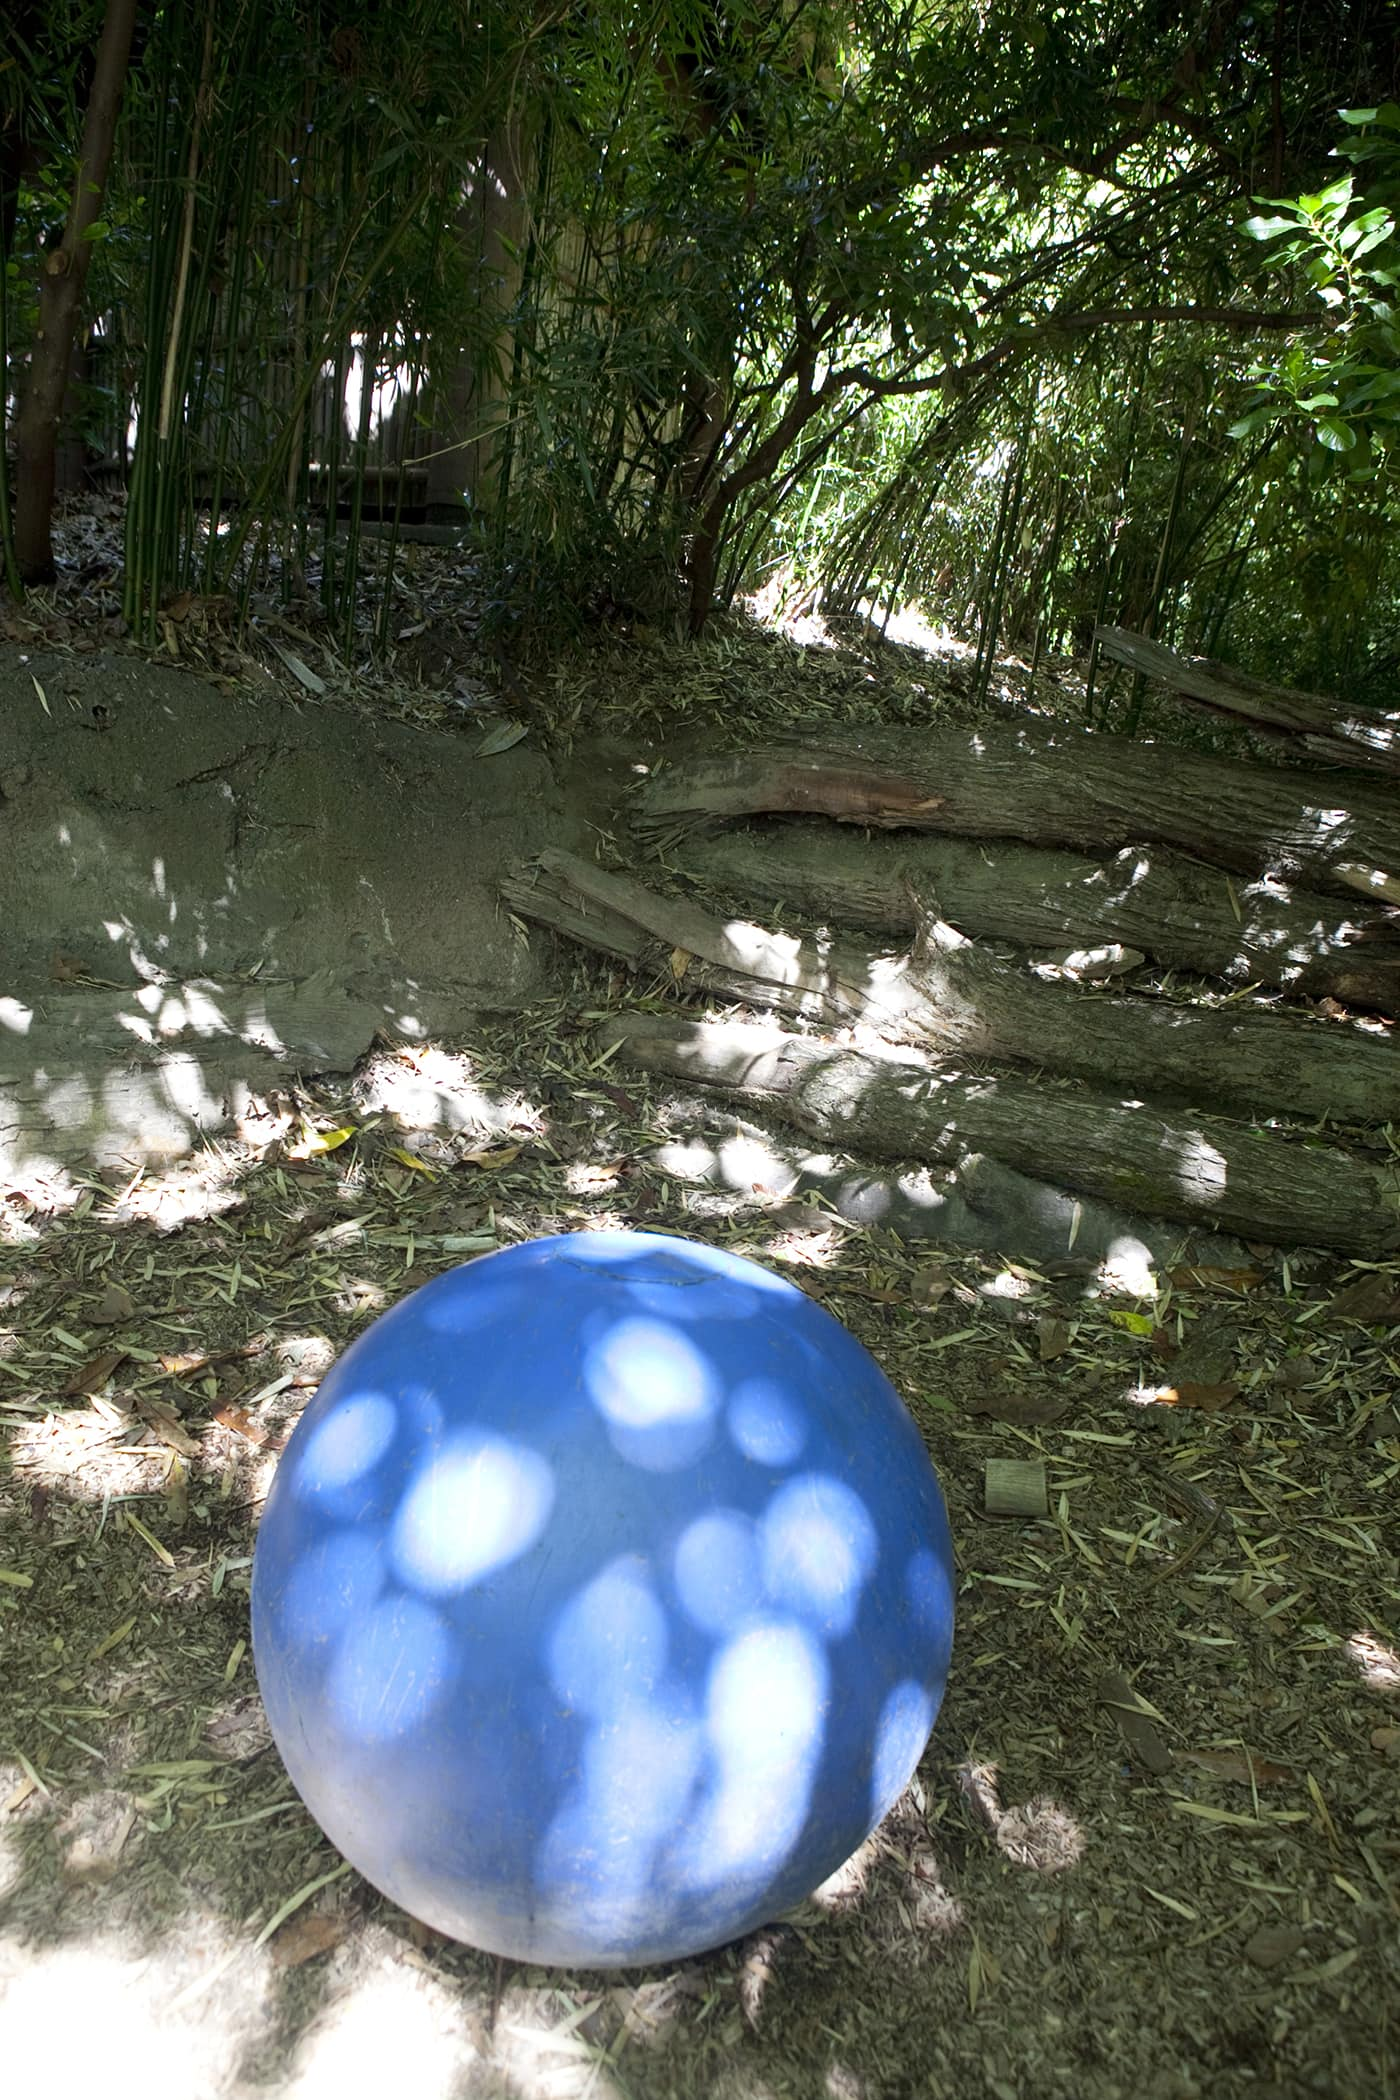 A big blue ball is a tribute to Hansa the elephant at Woodland Park Zoo in Seattle, Washington